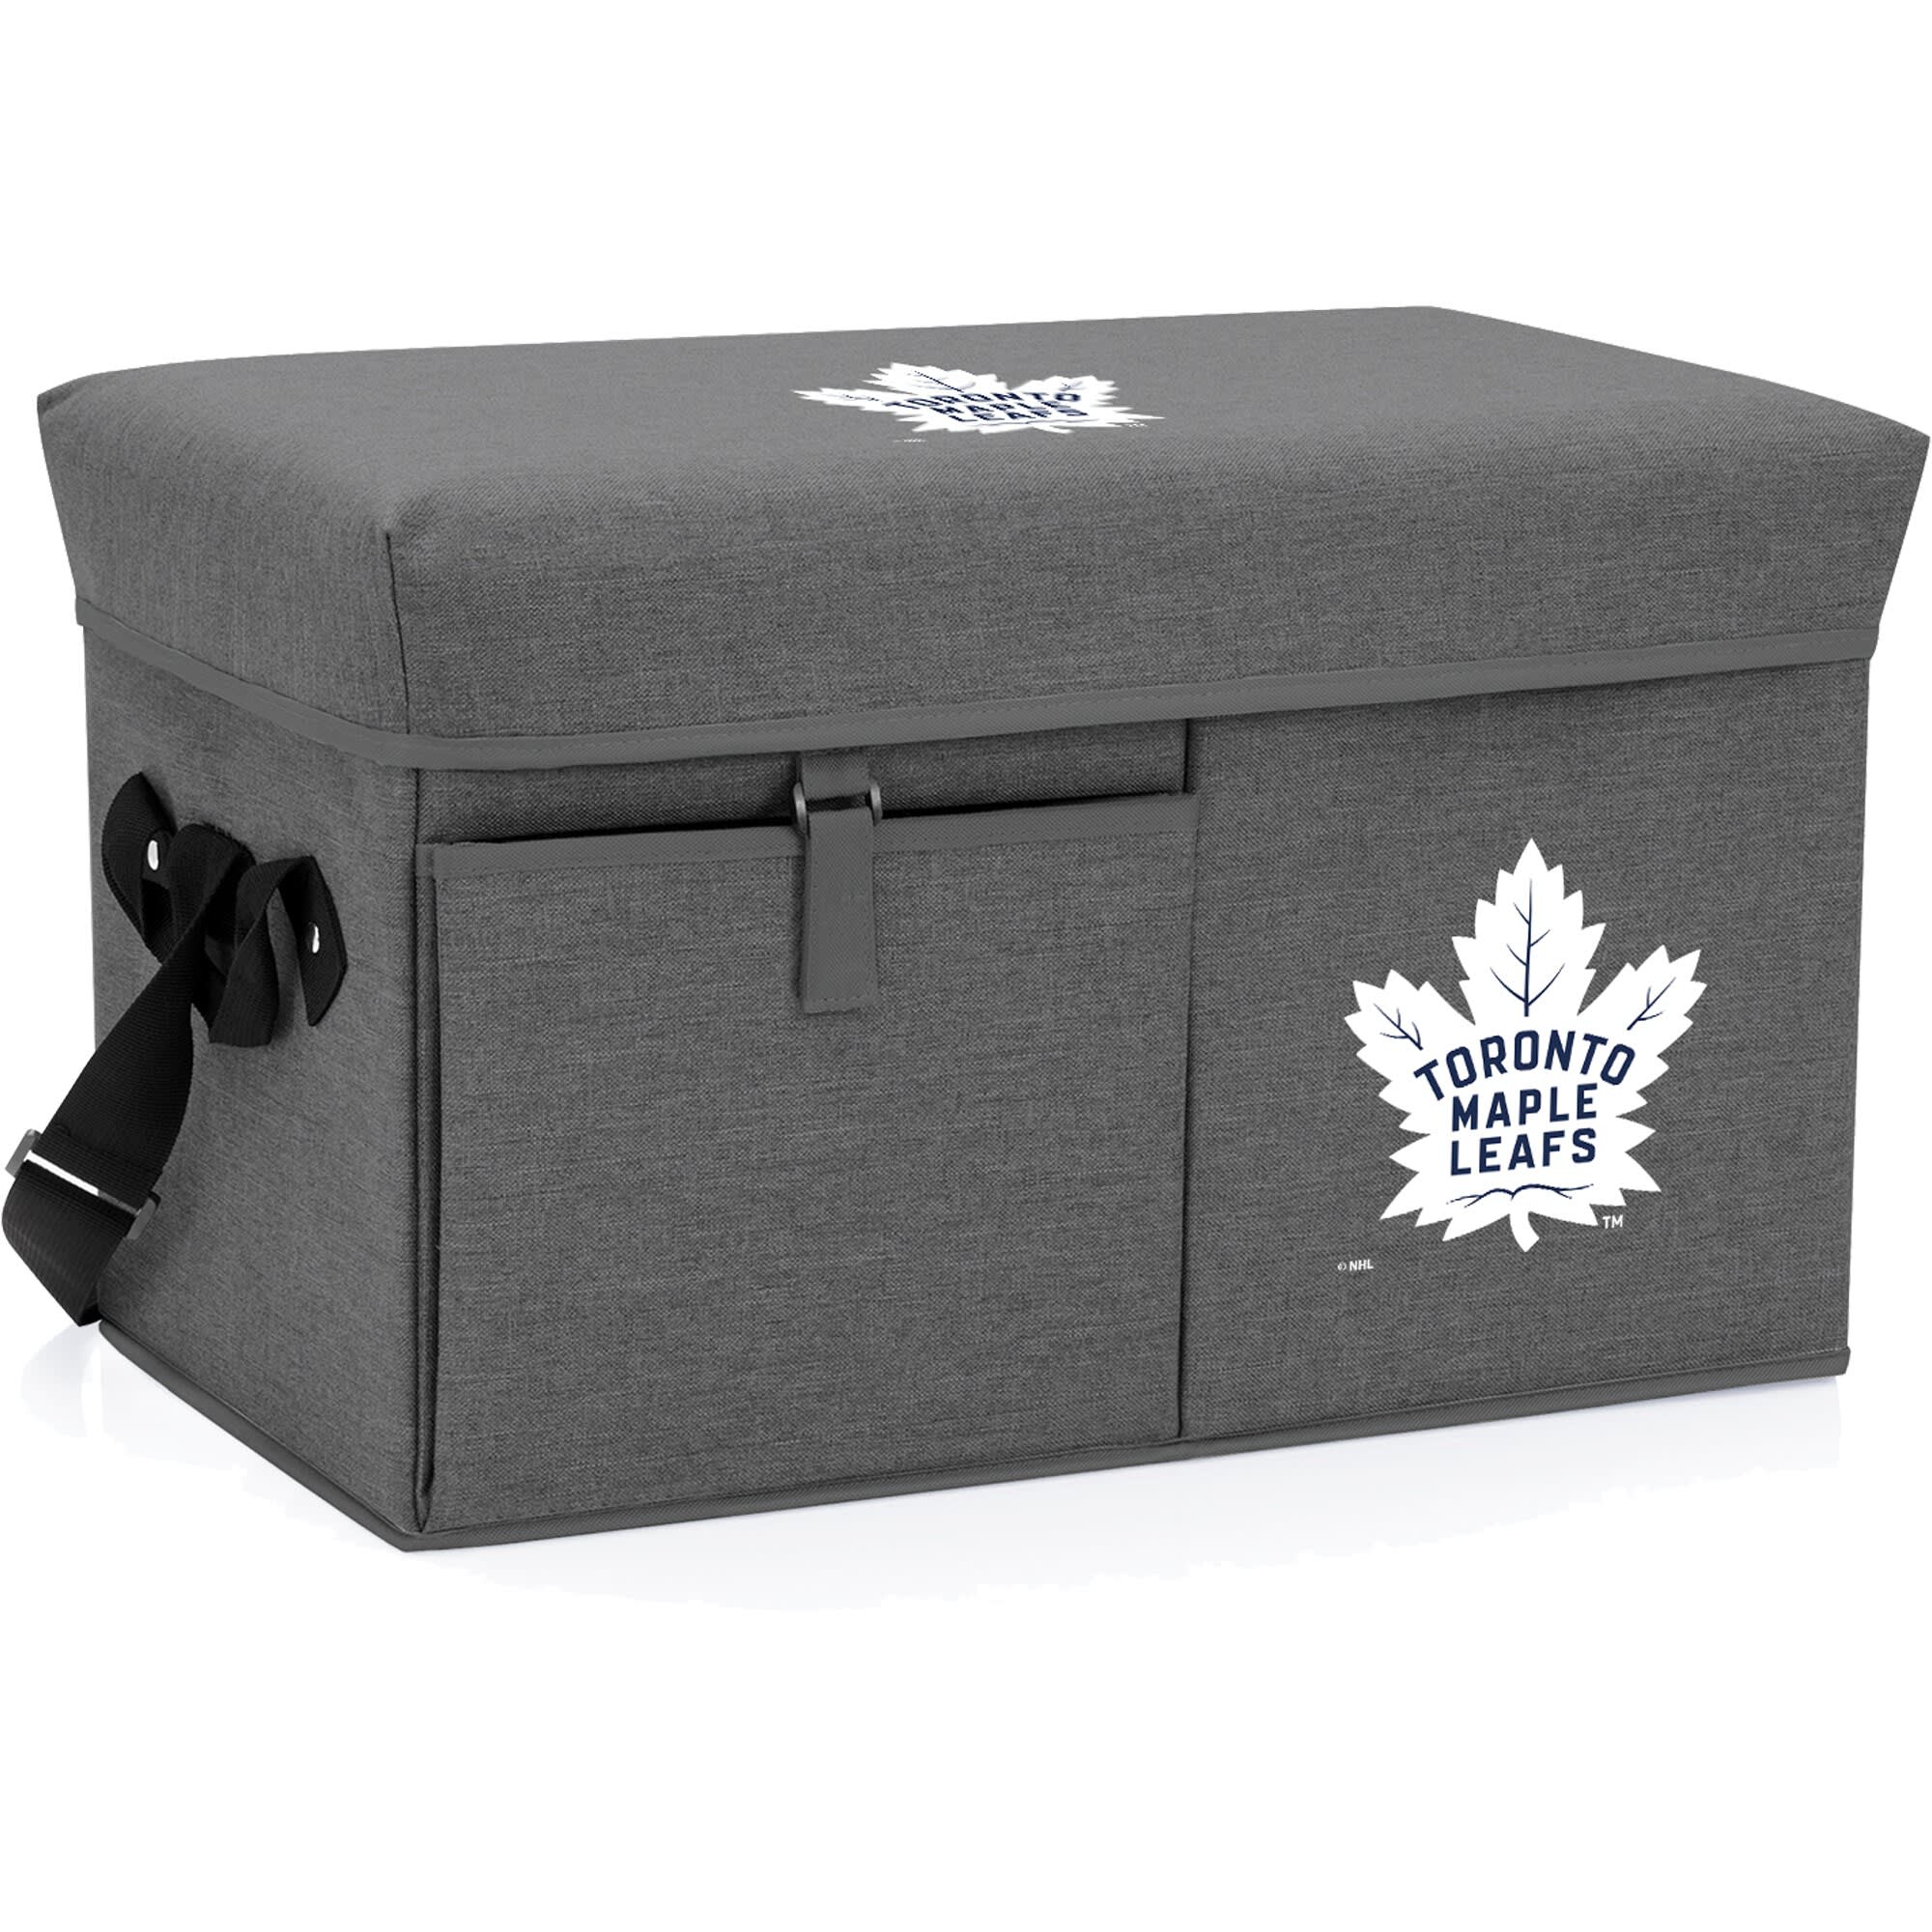 Father S Day Gifts For The Toronto Maple Leafs Fan